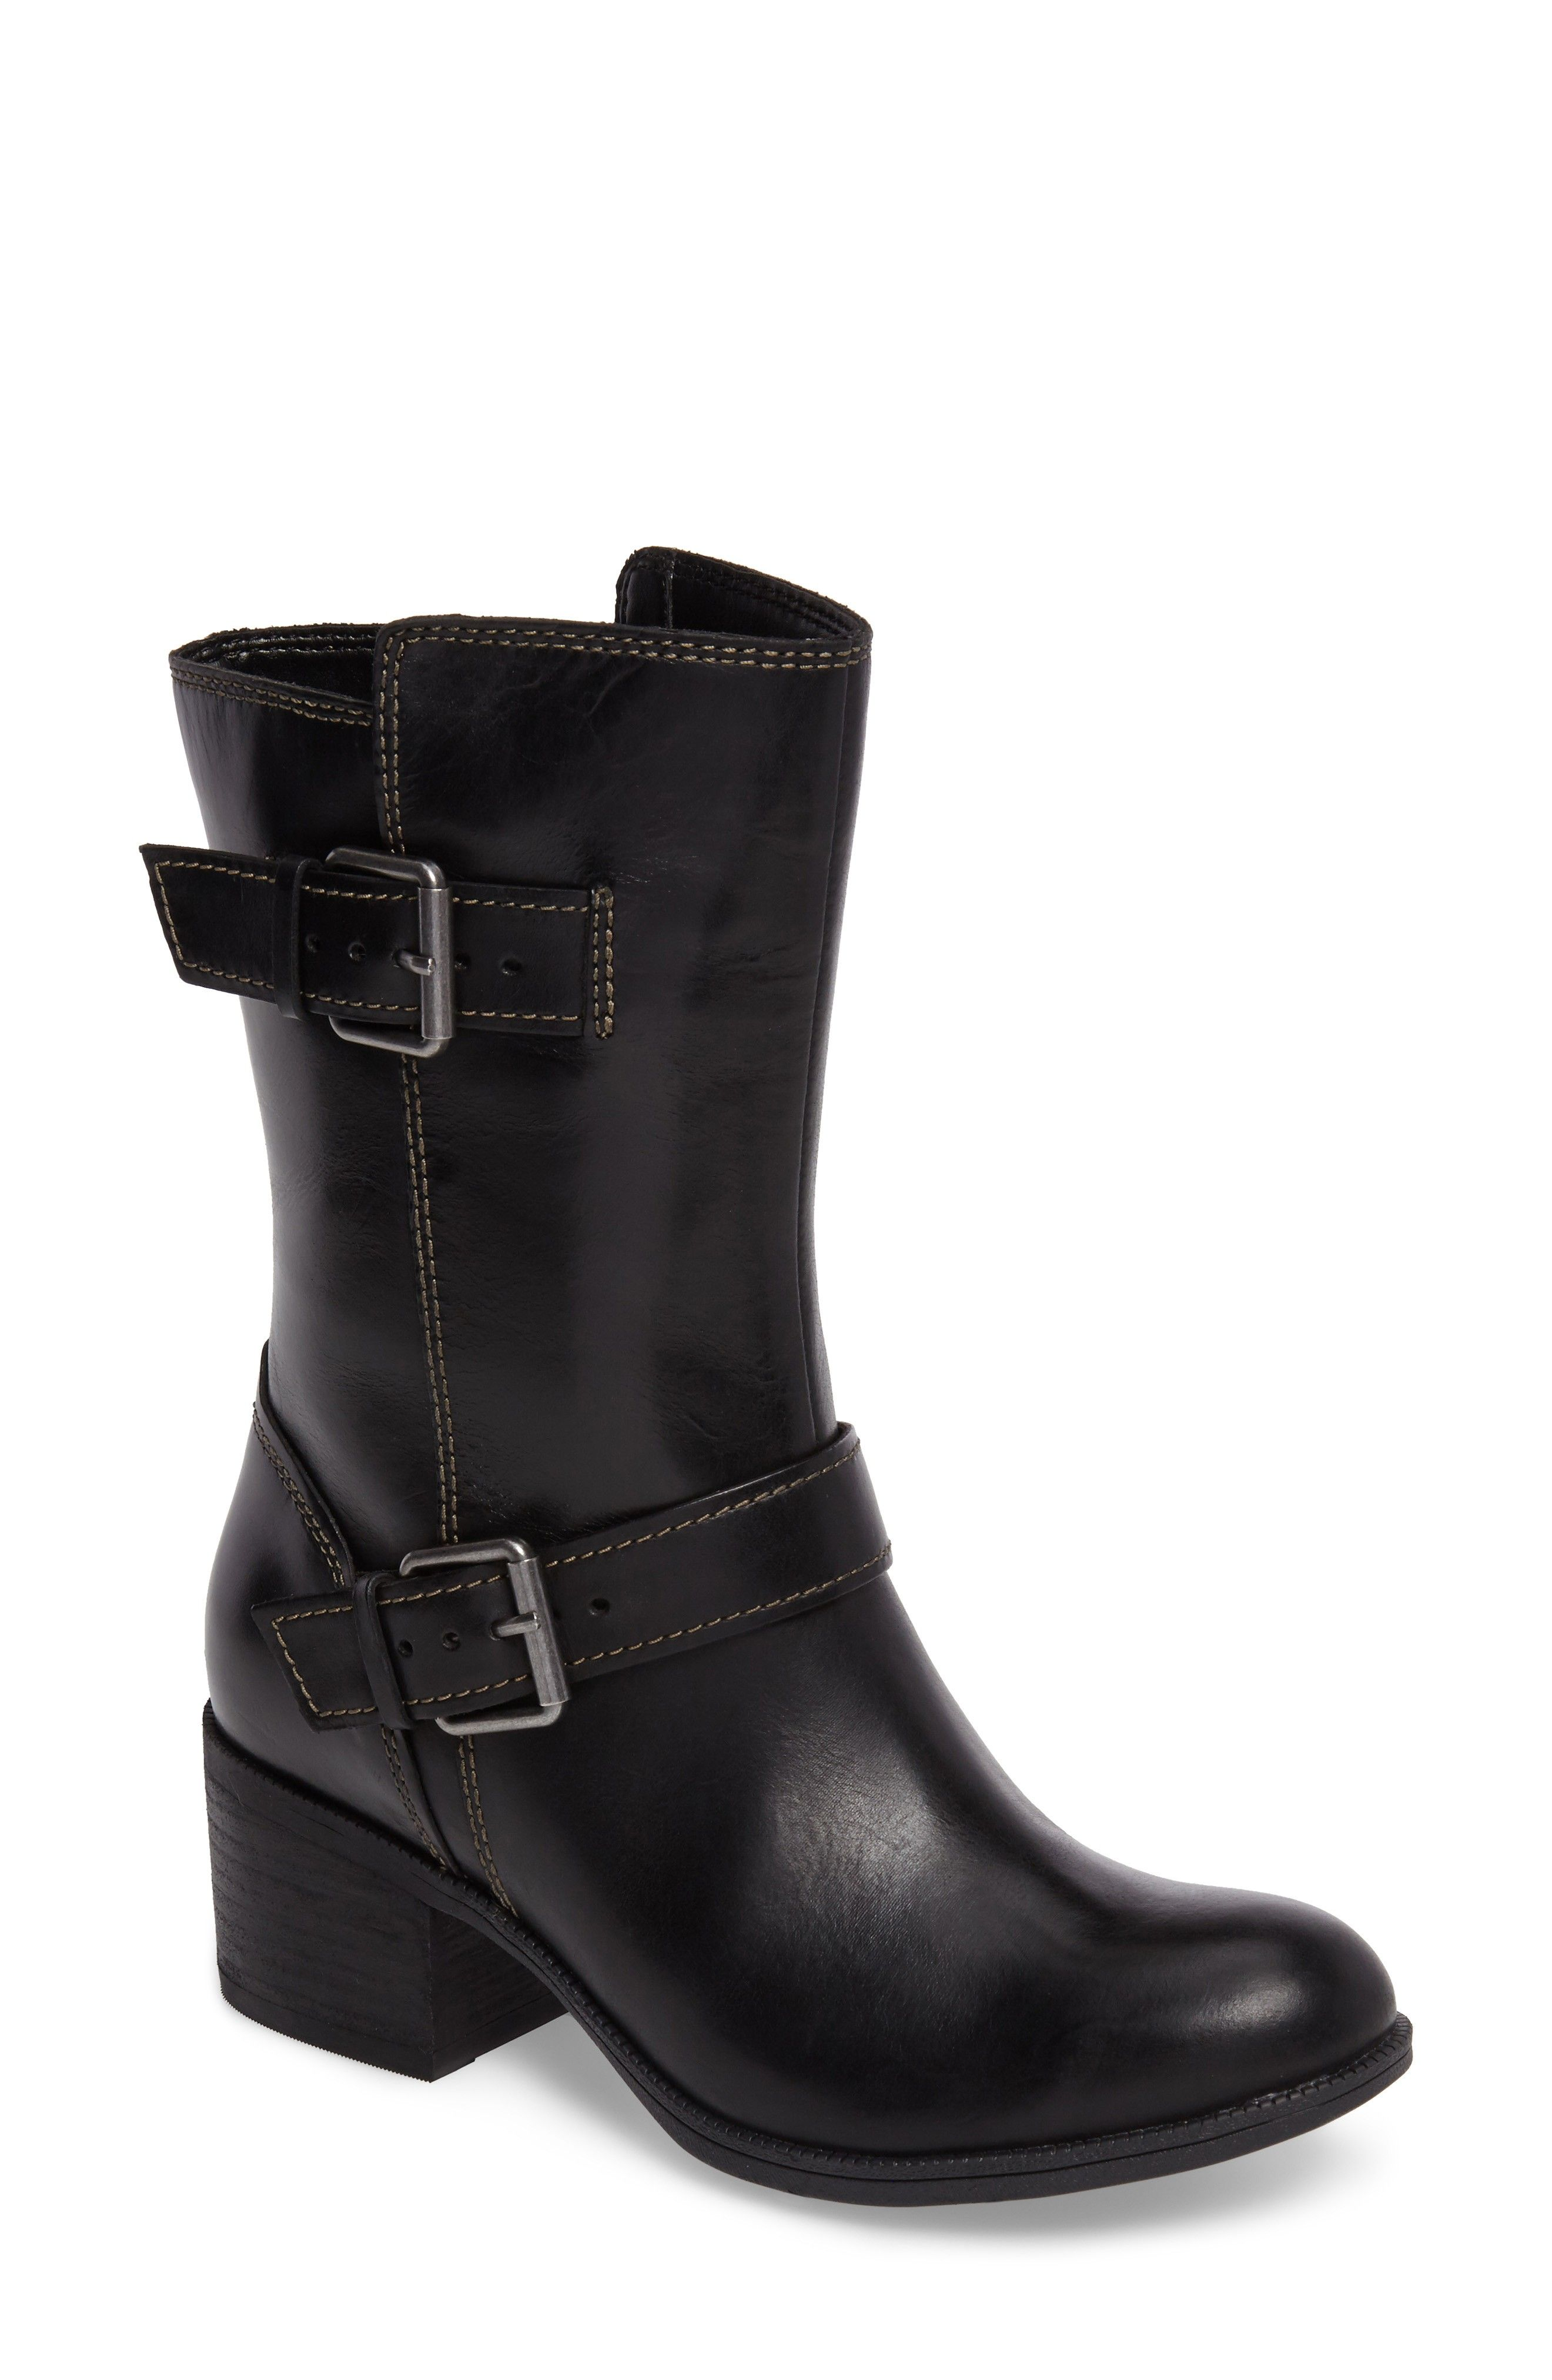 a1f6fa184fc5 Maypearl Oasis Boot online. New CLARKS  Shoes.   179.95  · Shoe BootsWomen s  ...